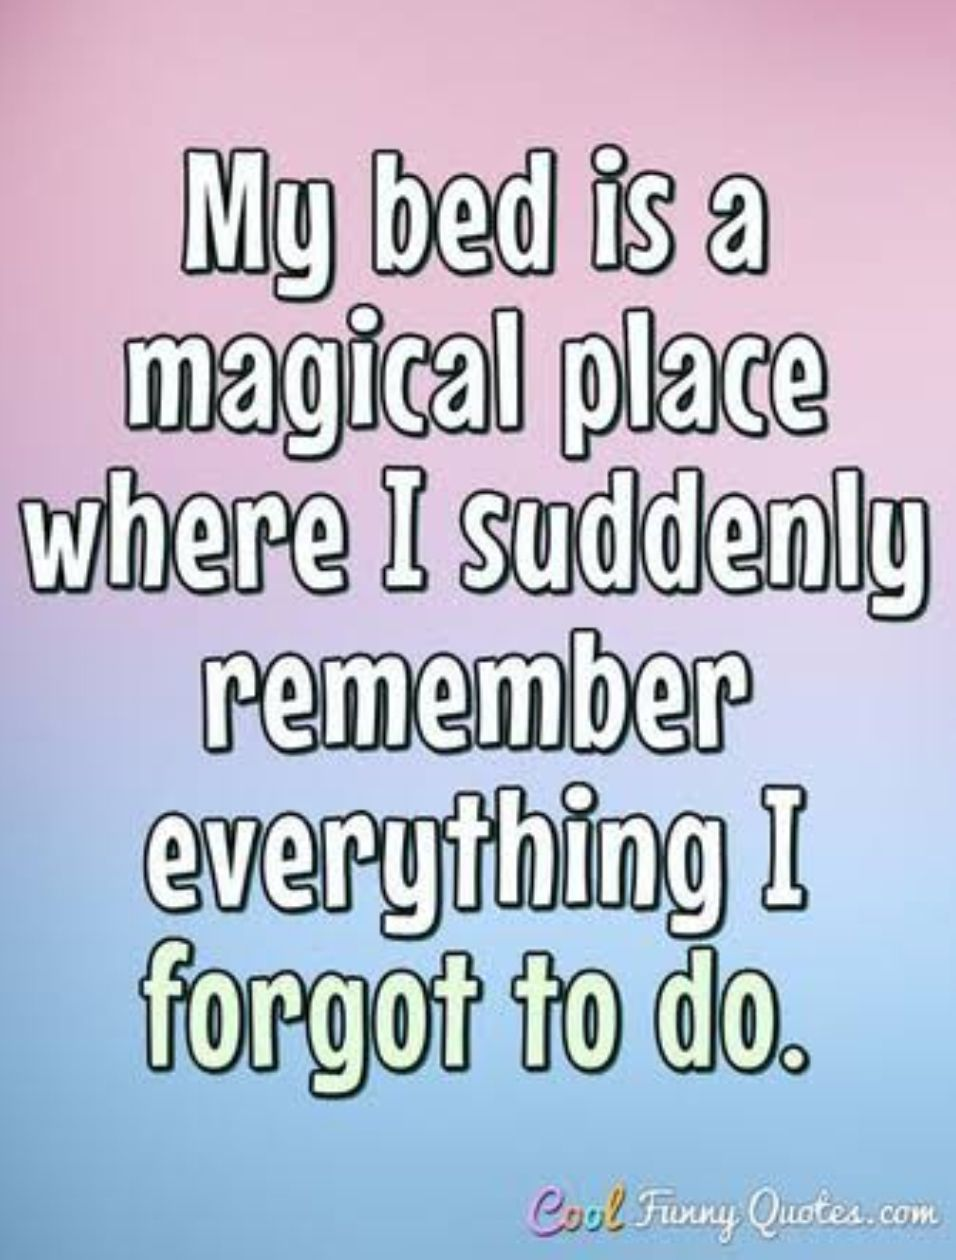 Pin By Norah Walker On Funny Funny Quotes Photography Quotes Funny Funny Quotes For Teens